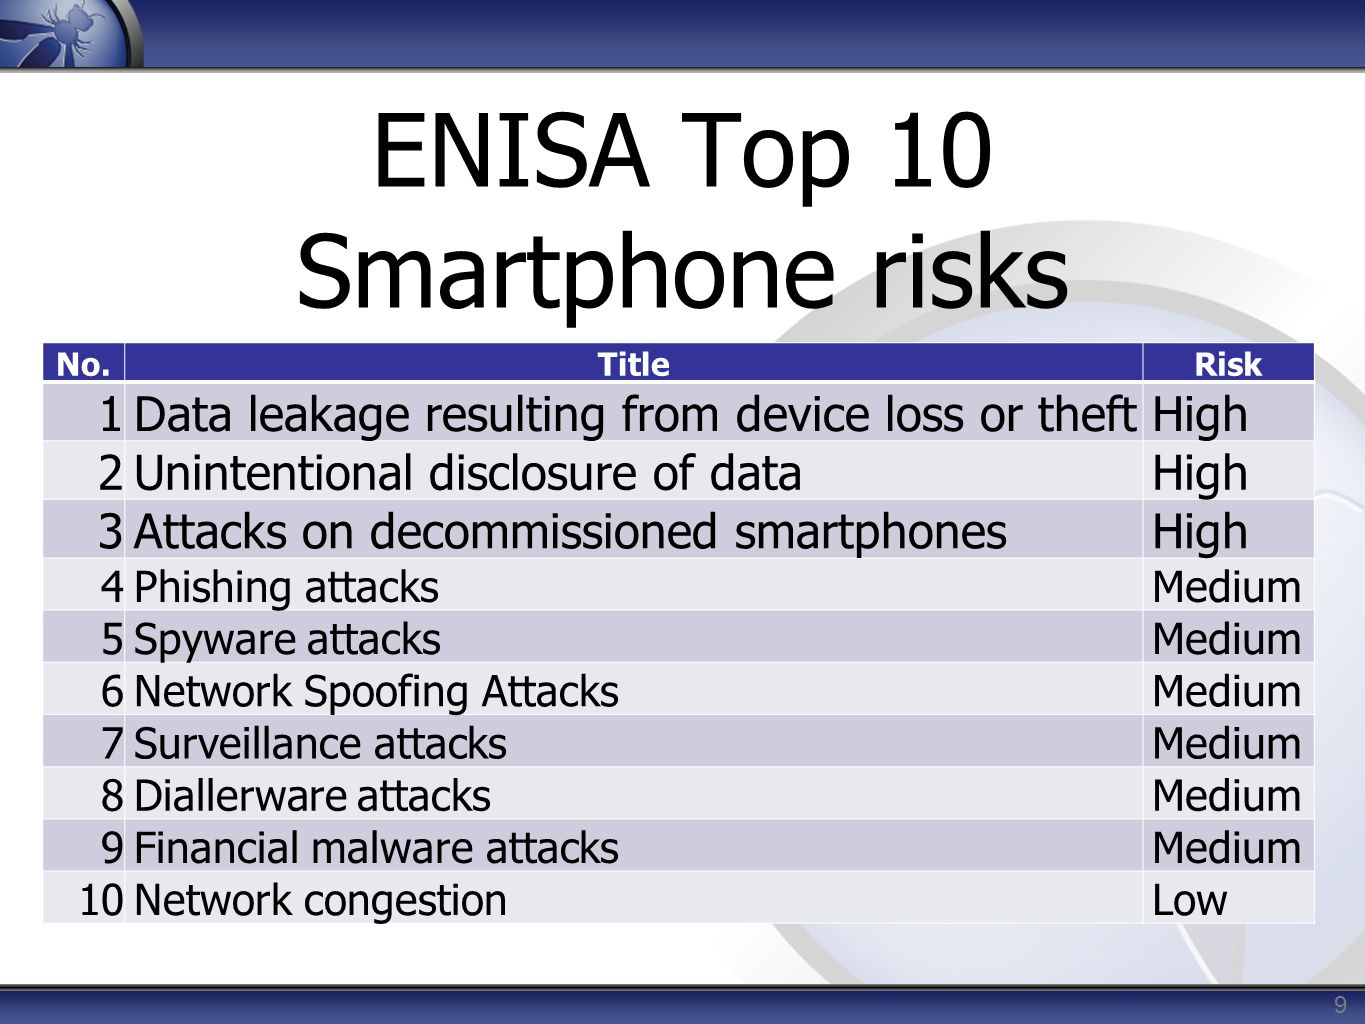 ENISA Top 10 Smartphone risks No.TitleRisk 1 Data leakage resulting from device loss or theft High 2 Unintentional disclosure of data High 3Attacks on decommissioned smartphonesHigh 4Phishing attacksMedium 5Spyware attacksMedium 6Network Spoofing AttacksMedium 7Surveillance attacksMedium 8Diallerware attacksMedium 9Financial malware attacksMedium 10Network congestionLow 9